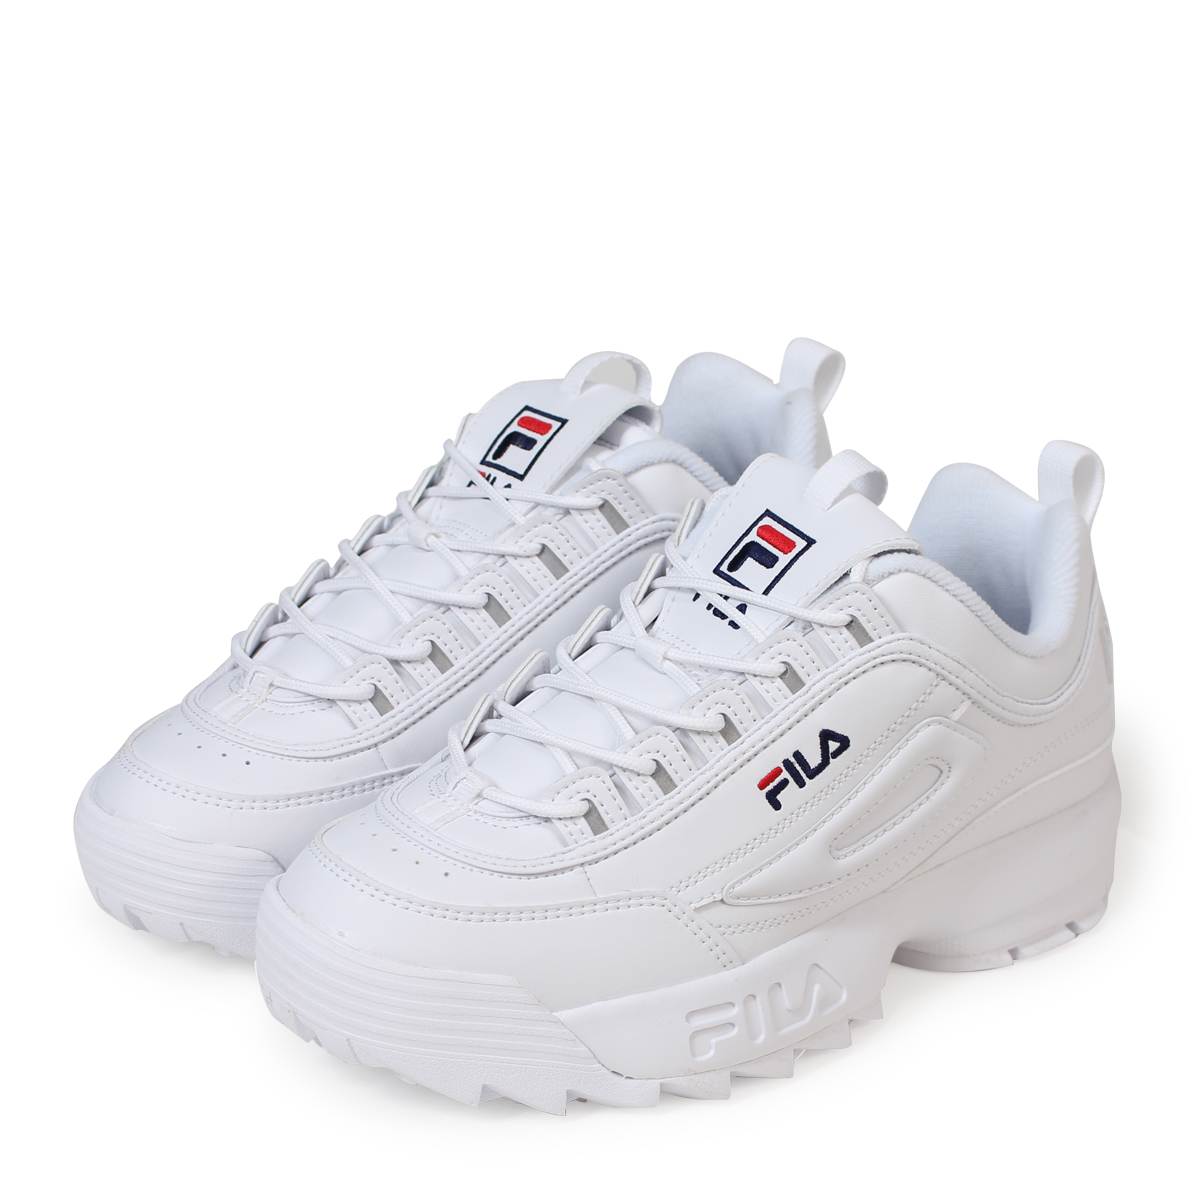 FILA DISRUPTOR 2 フィラディスラプター 2 sneakers men gap Dis white FS1HTA1071X [191]